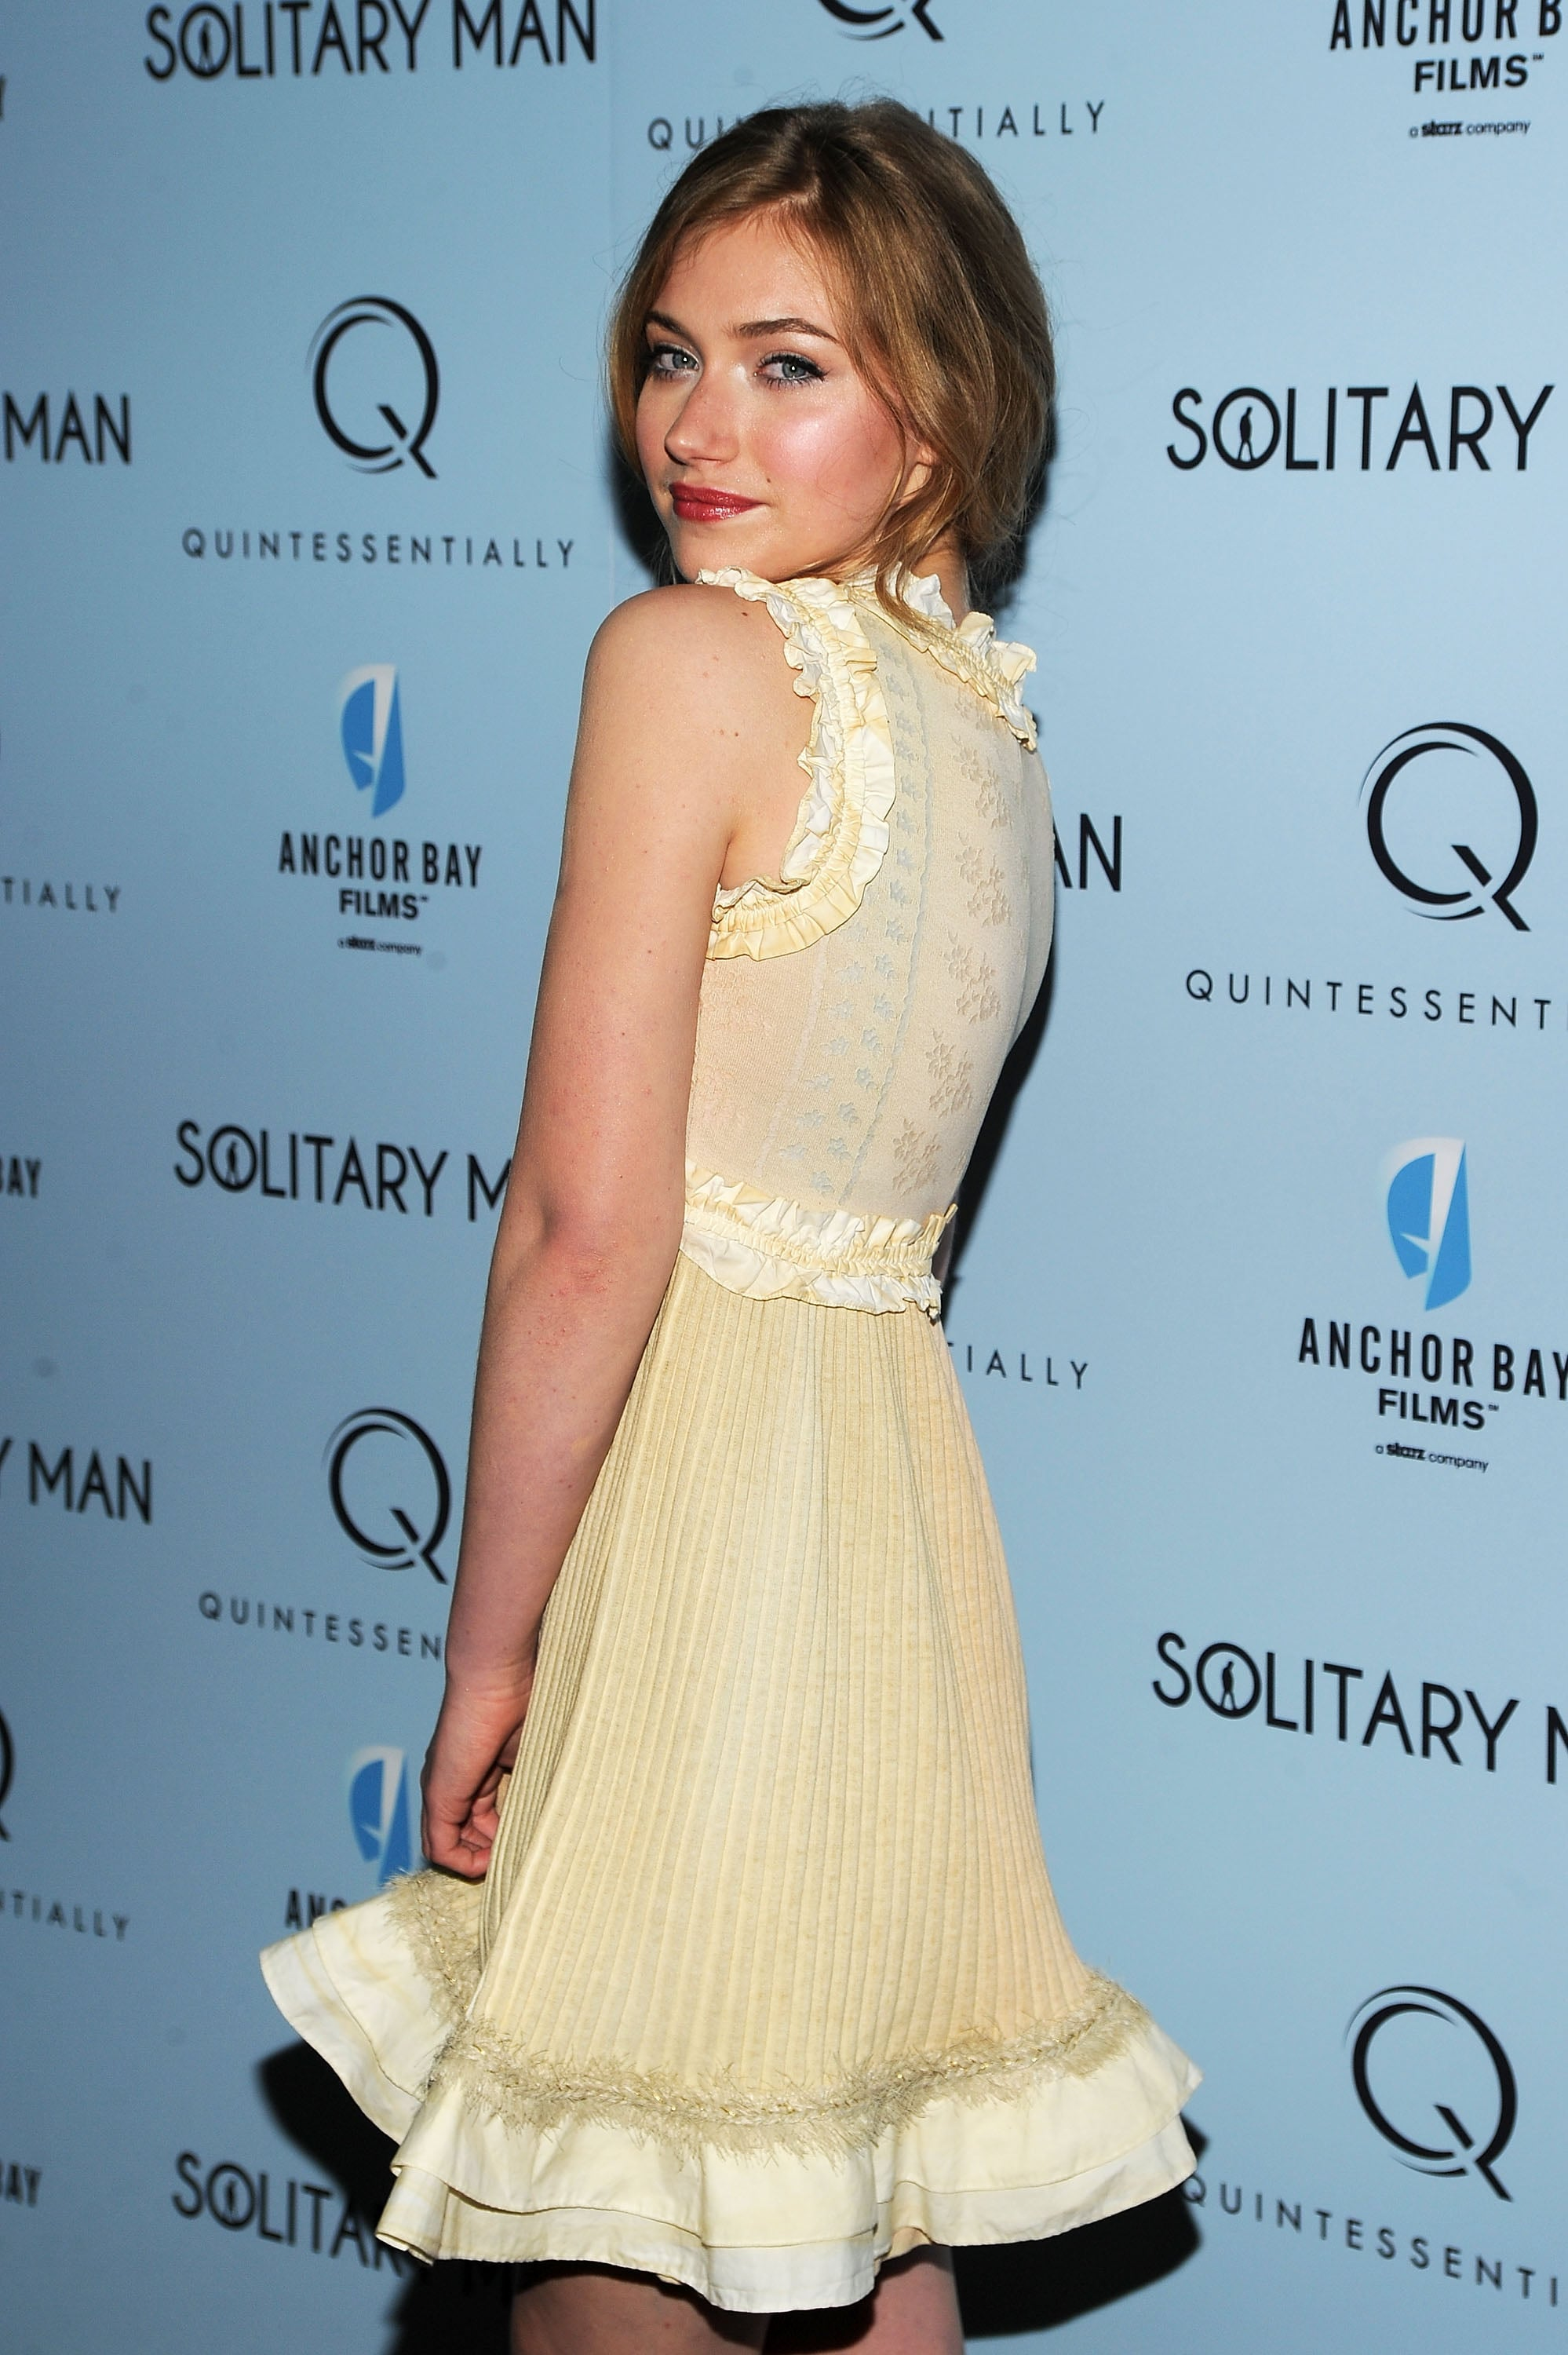 A frilled pale yellow dress was a sweet choice for the premiere of Solitary Man in New York.